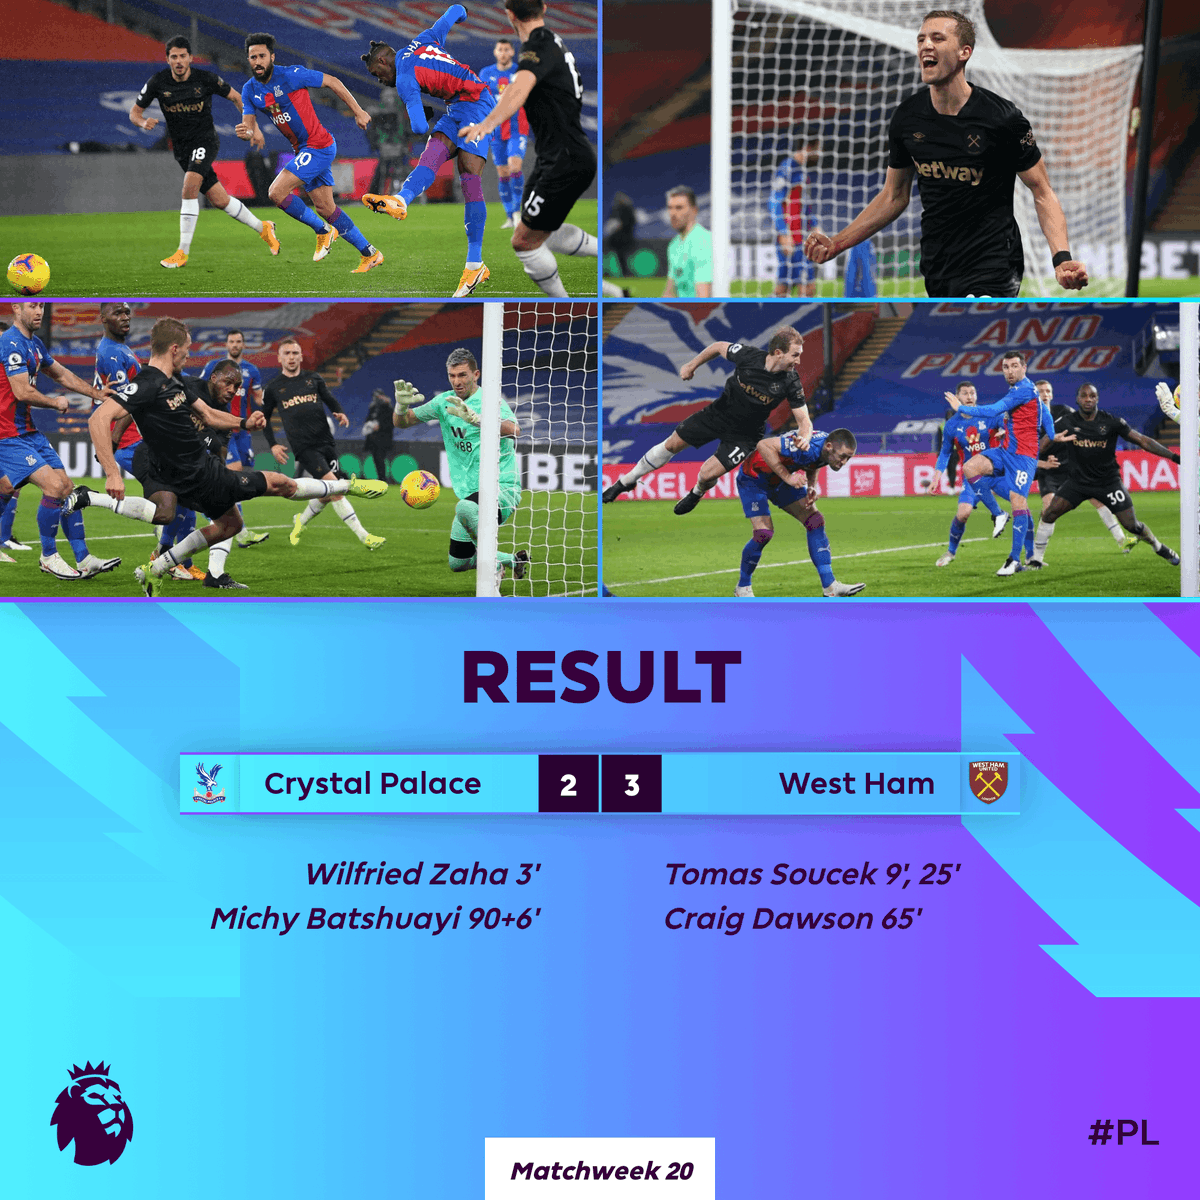 Replying to @premierleague: West Ham win again to go 𝐟𝐨𝐮𝐫𝐭𝐡 in the #PL 👏  #CRYWHU